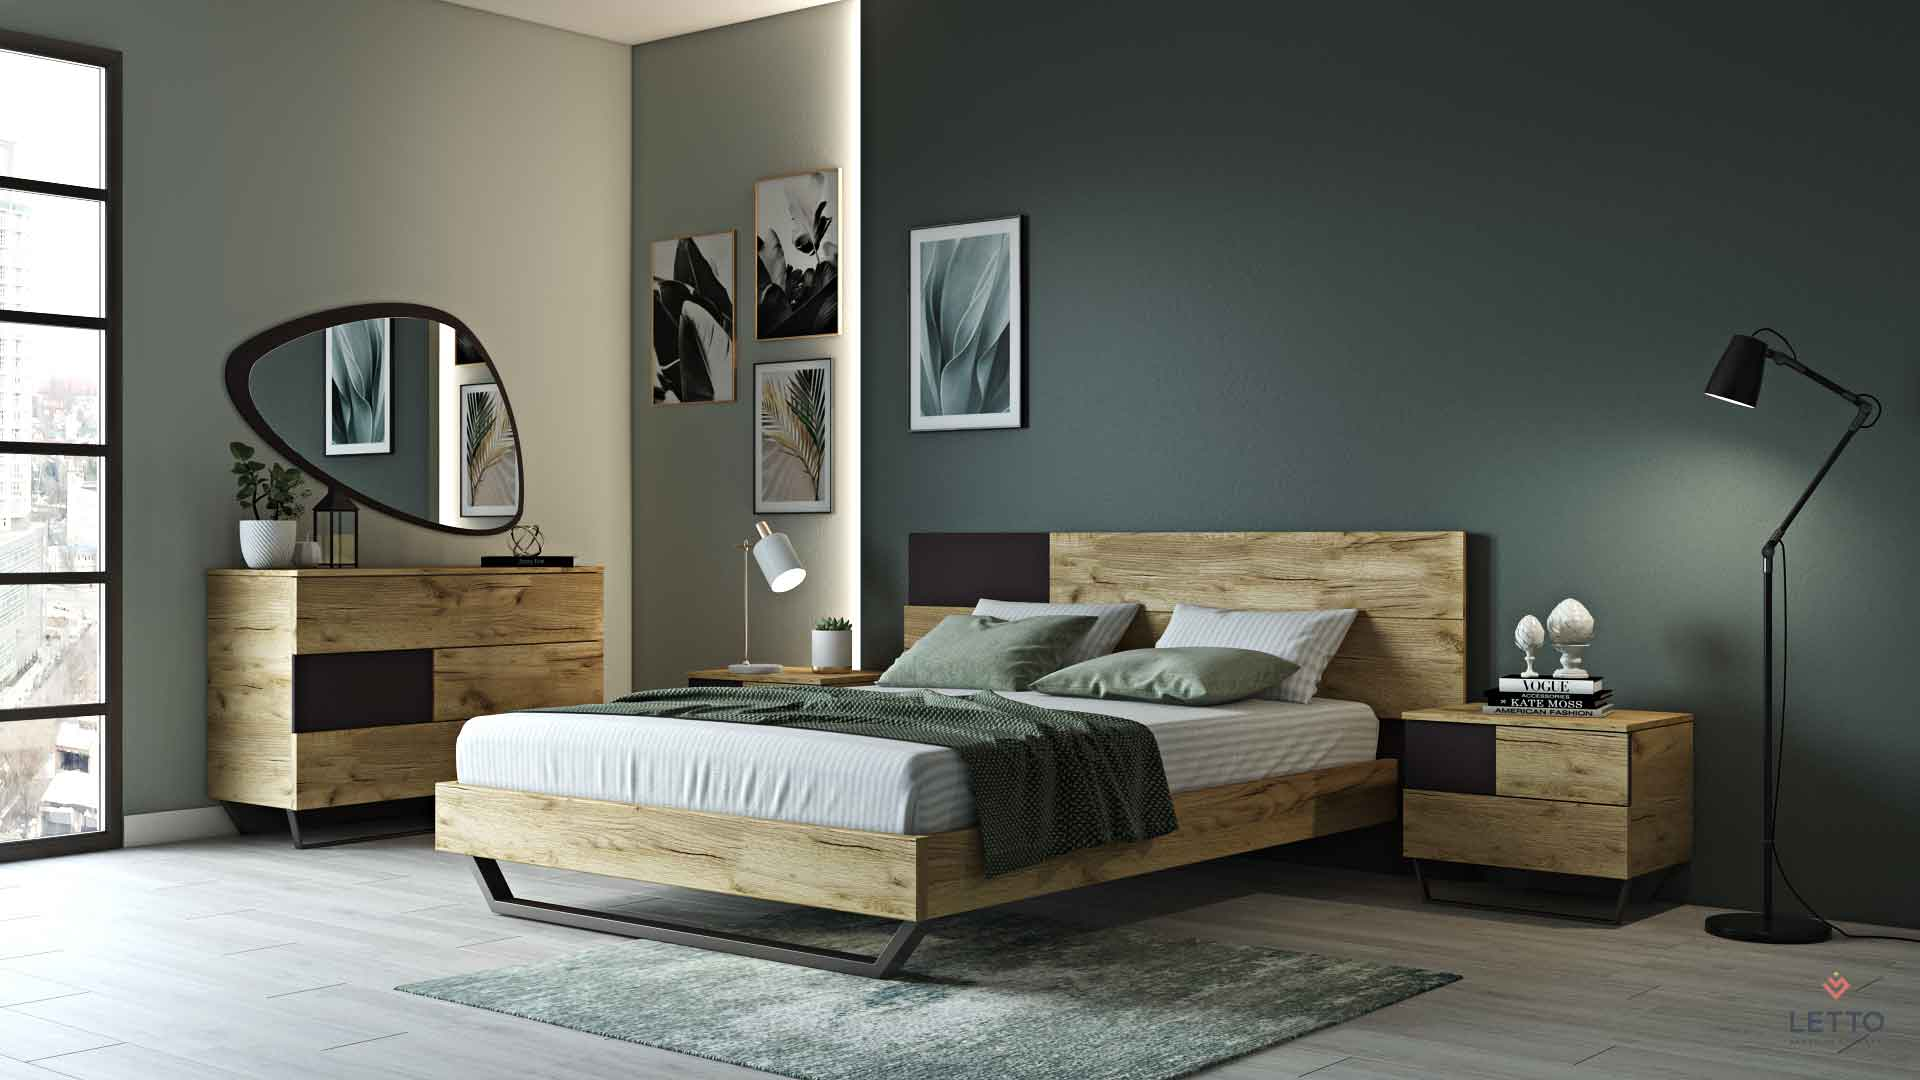 krevati-komodina-city-collection-rusticoak-letto-01-2